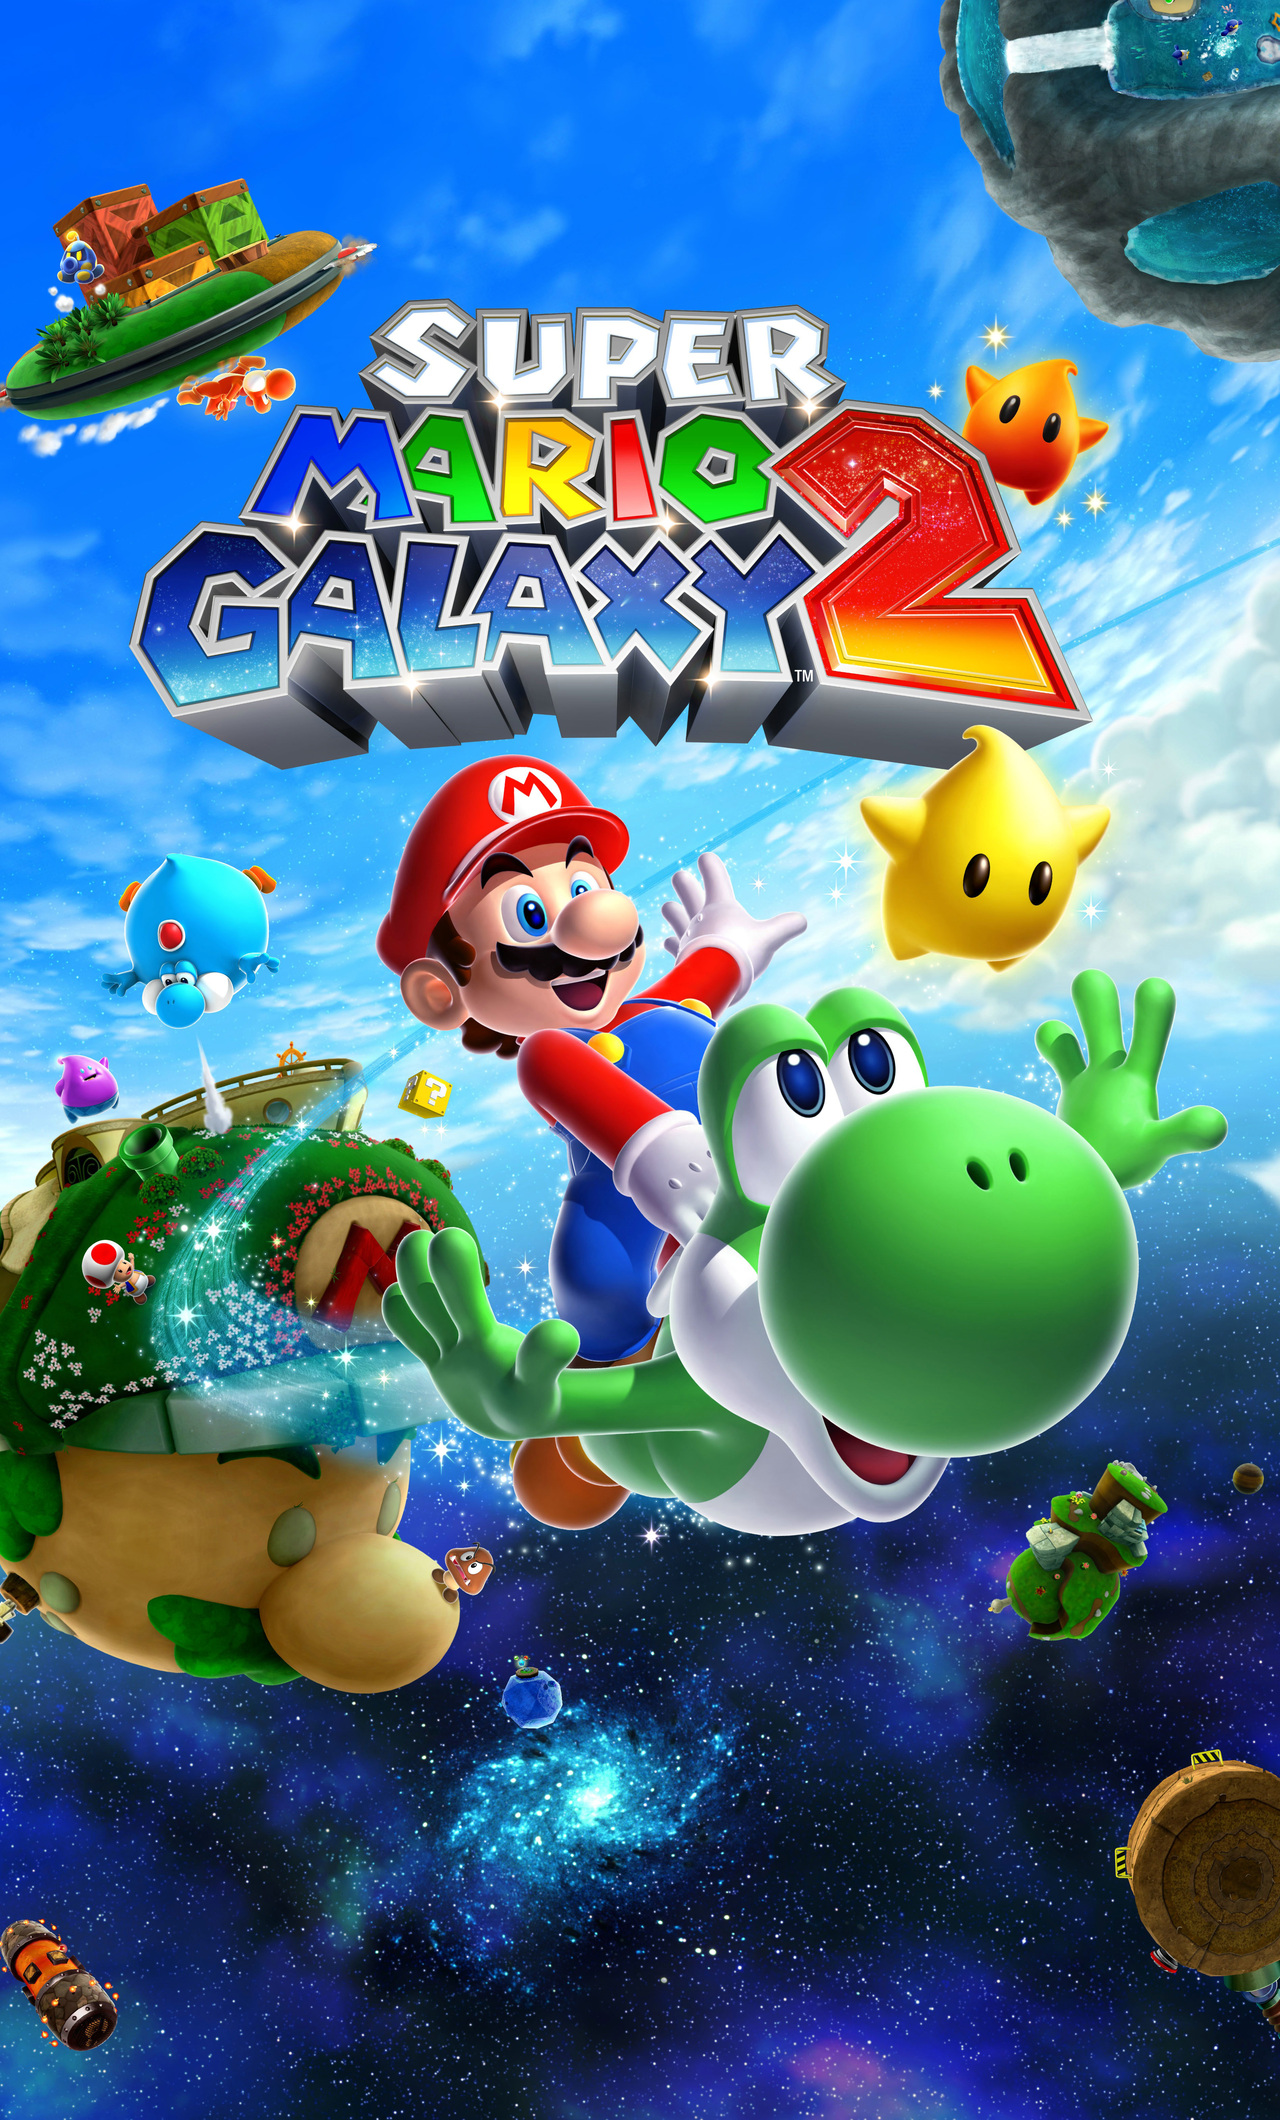 1280x2120 Super Mario Galaxy 2 Iphone 6 Hd 4k Wallpapers Images